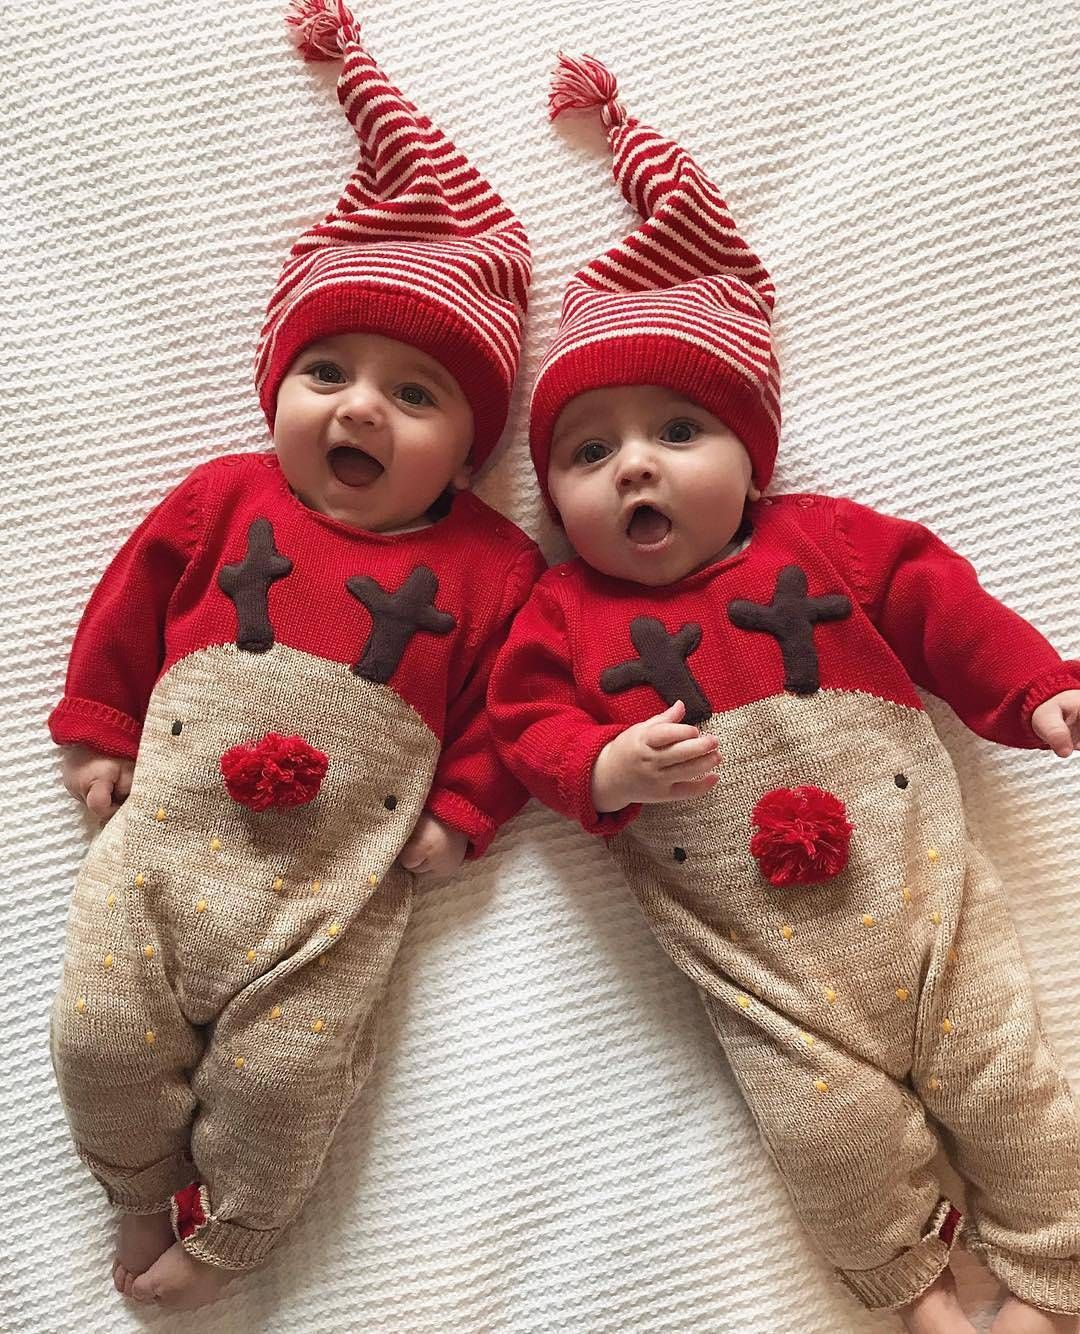 fd578e040cfa Adorable twin baby boys ready for their first Christmas  multiples  twins   twinlife